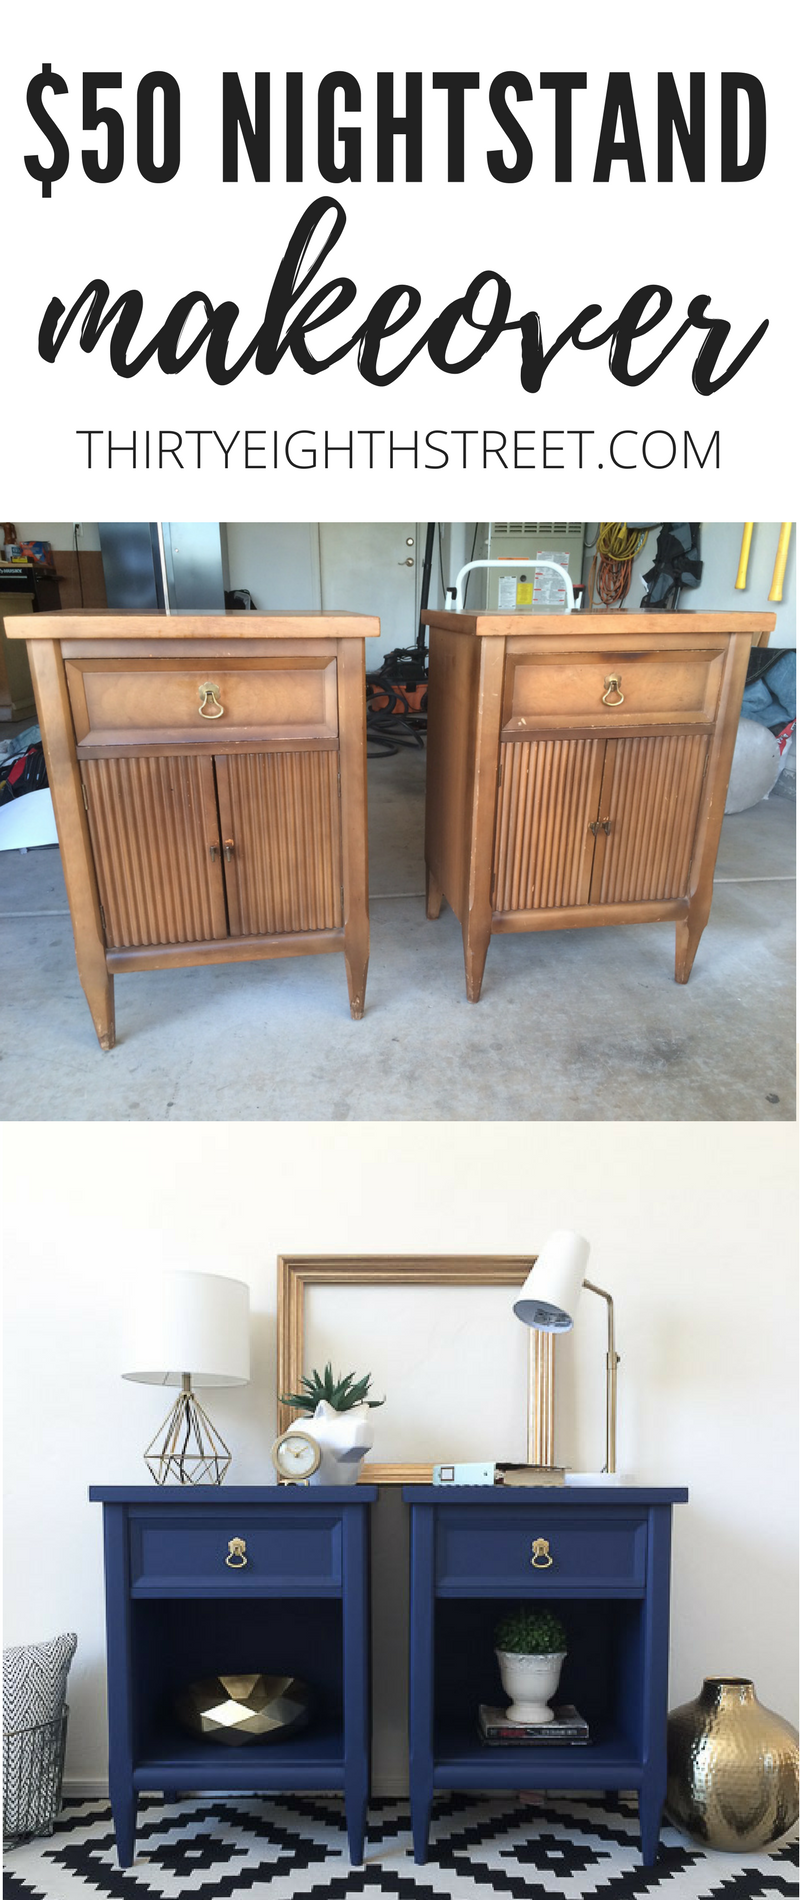 Update Vintage Nightstands With Paint! Thirty Eighth Street Offers Fabulous  Ideas For Updating Old Painted Furniture Using Paint, Stain, ...